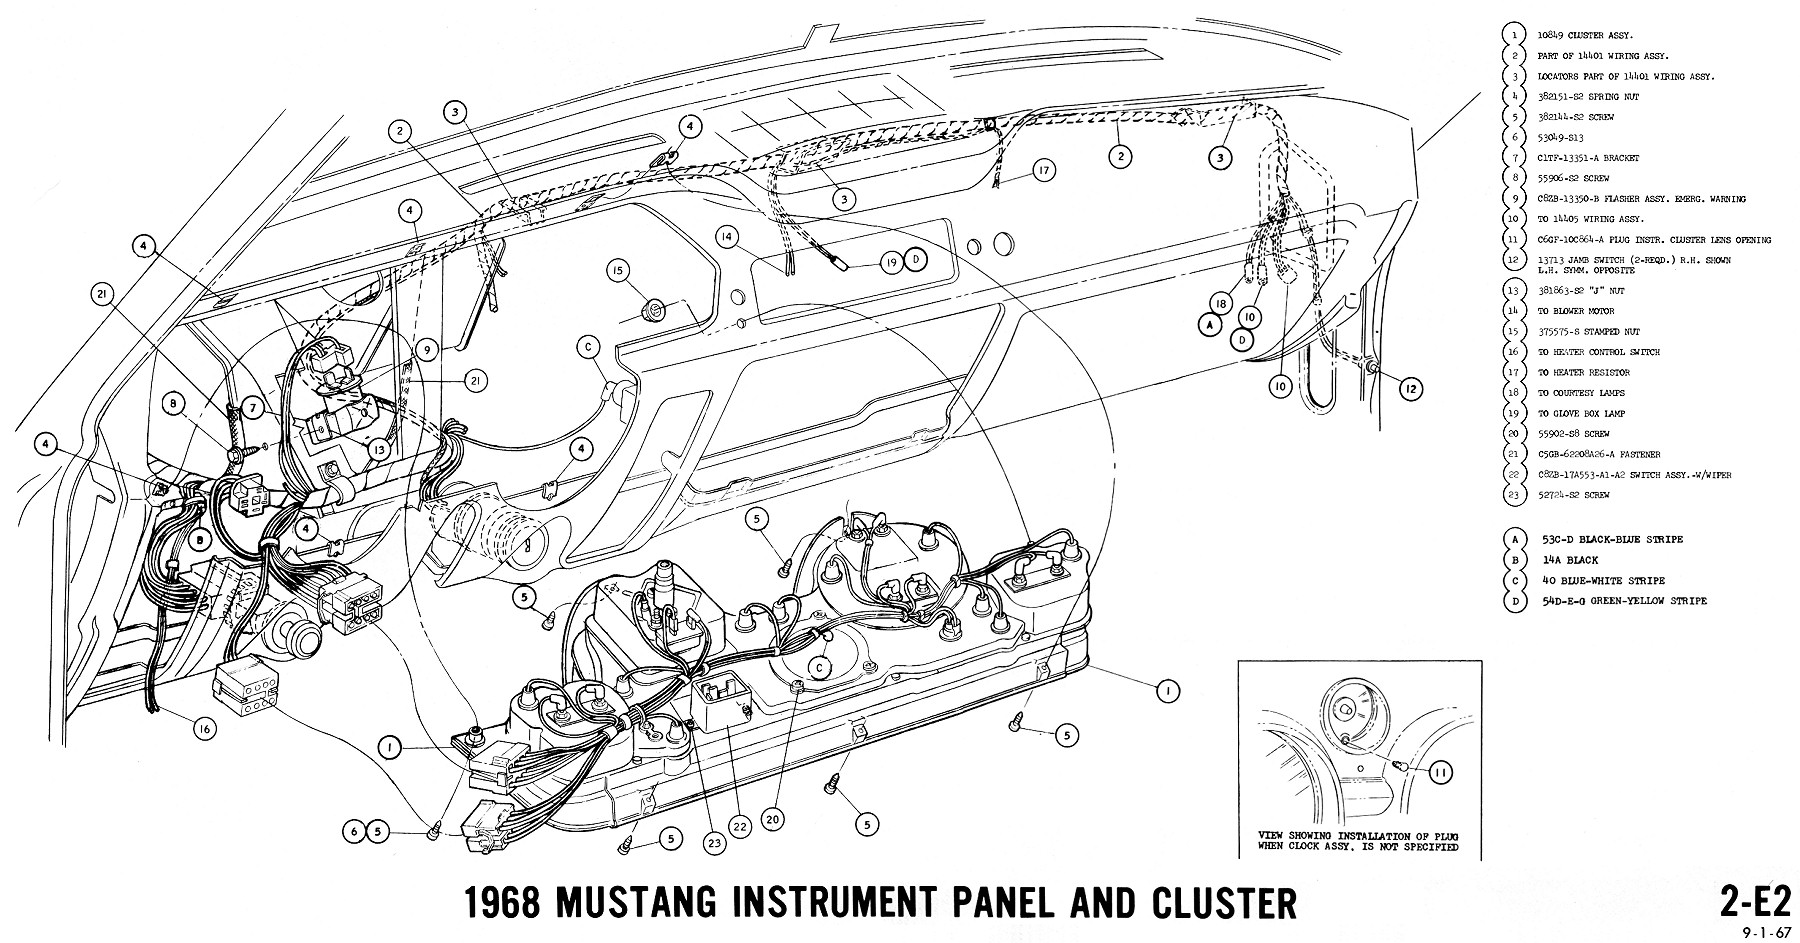 1970 mustang dash wiring diagram just another wiring diagram blog • 1968 mustang instrument wiring diagram best secret wiring diagram u2022 rh resultadoloterias co 1970 ford mustang wiring diagram 1970 mustang instrument